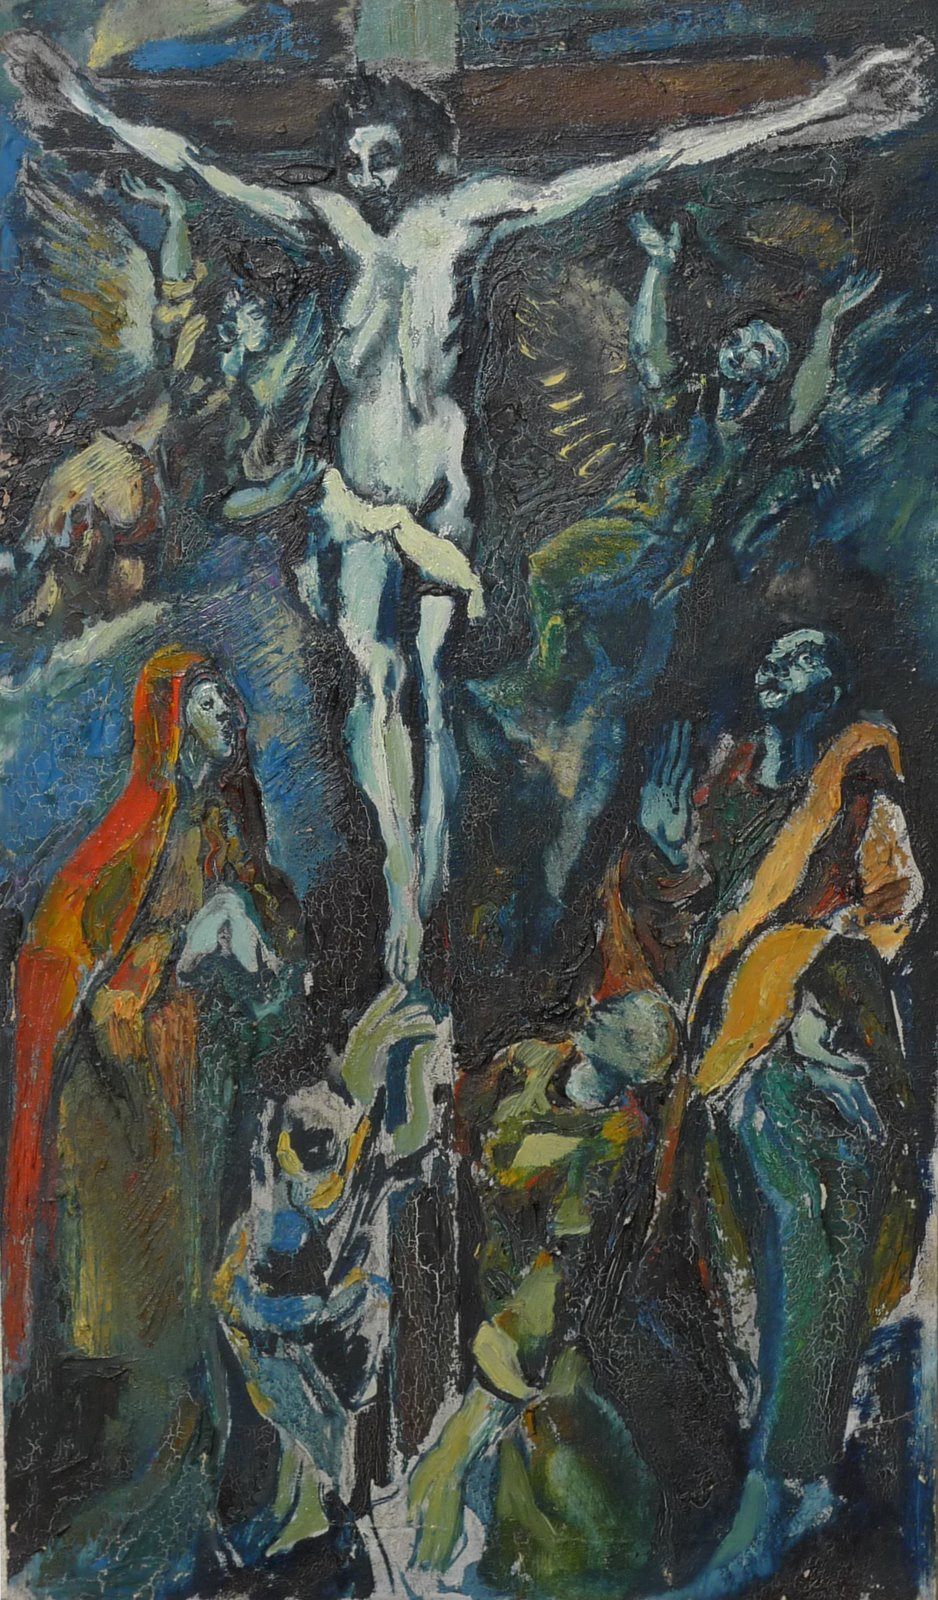 Christ on the cross according to El Greco (c.1931-32)